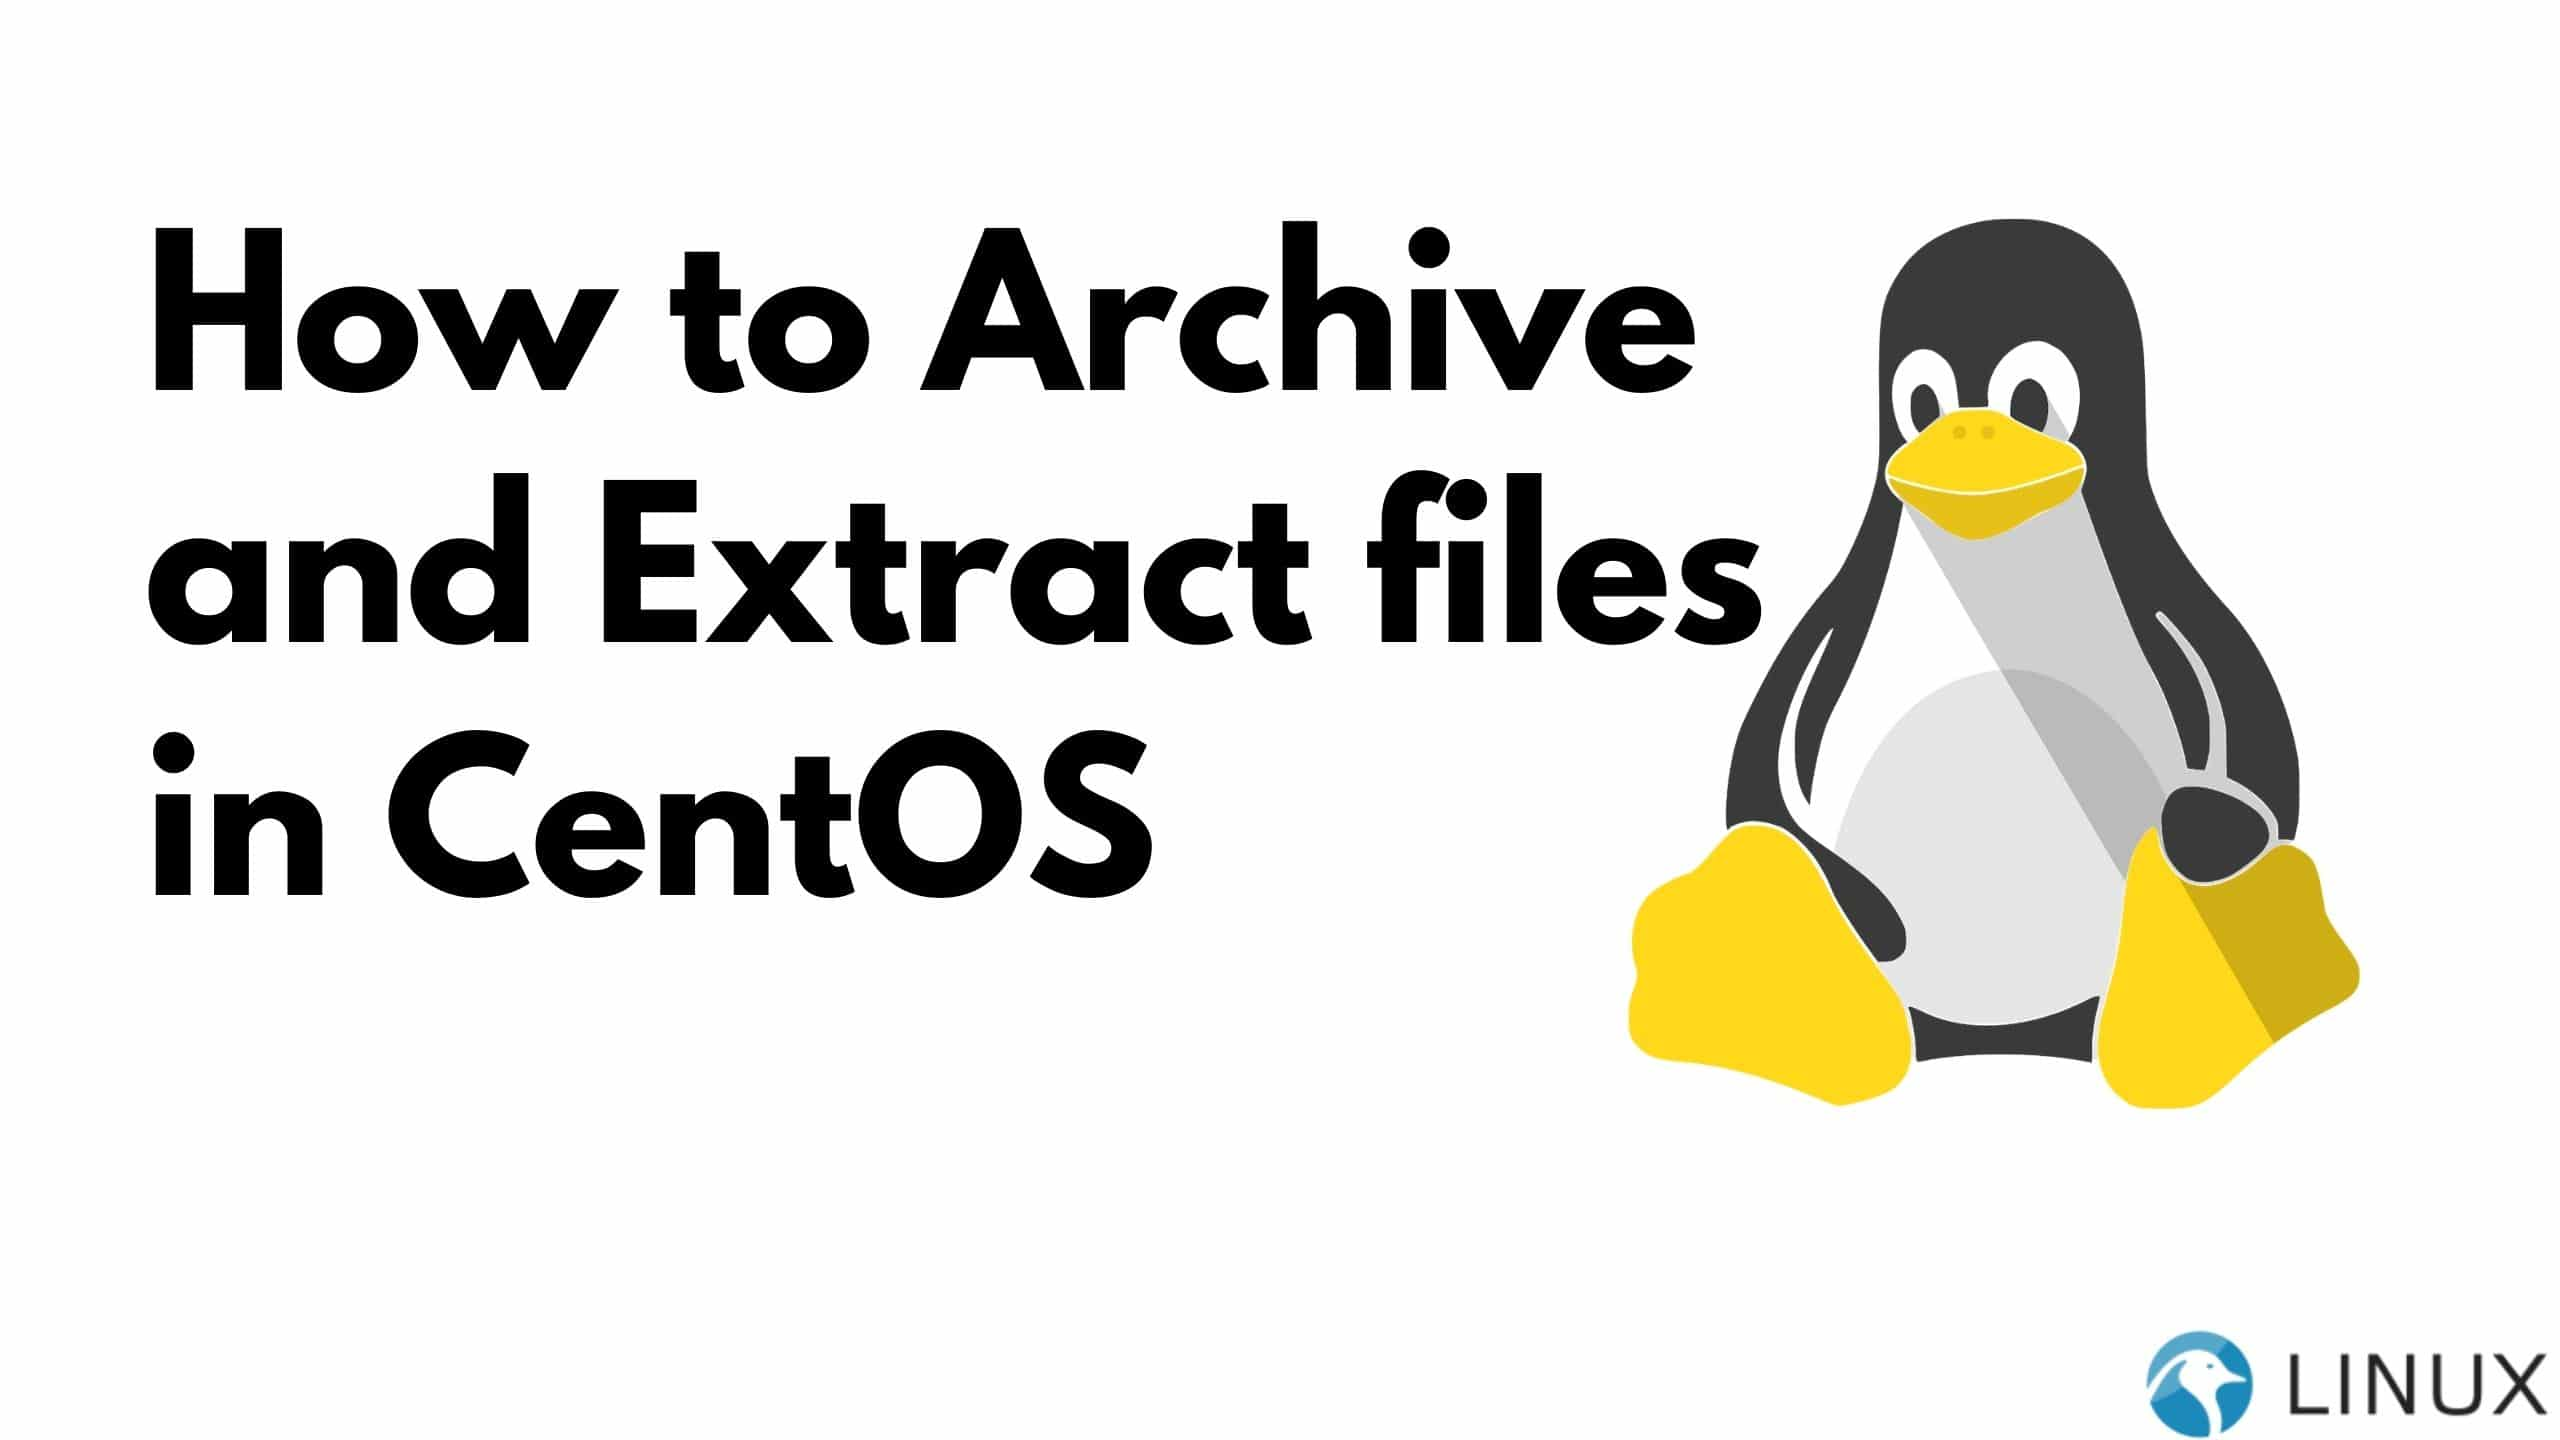 How to archive and extract files in CentOS